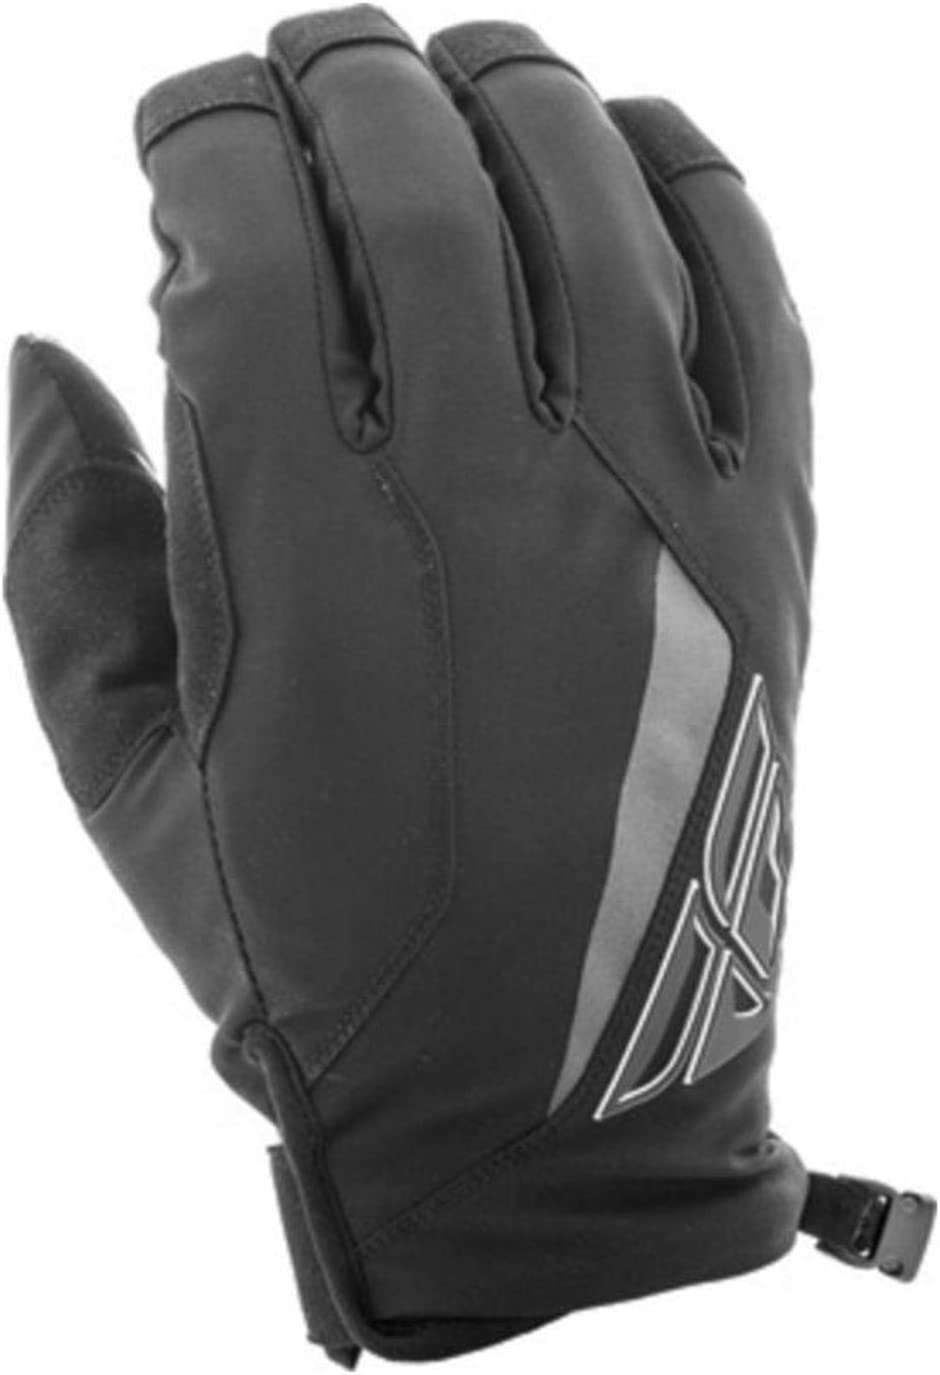 Fly Racing Mens Gloves Black, Size 10